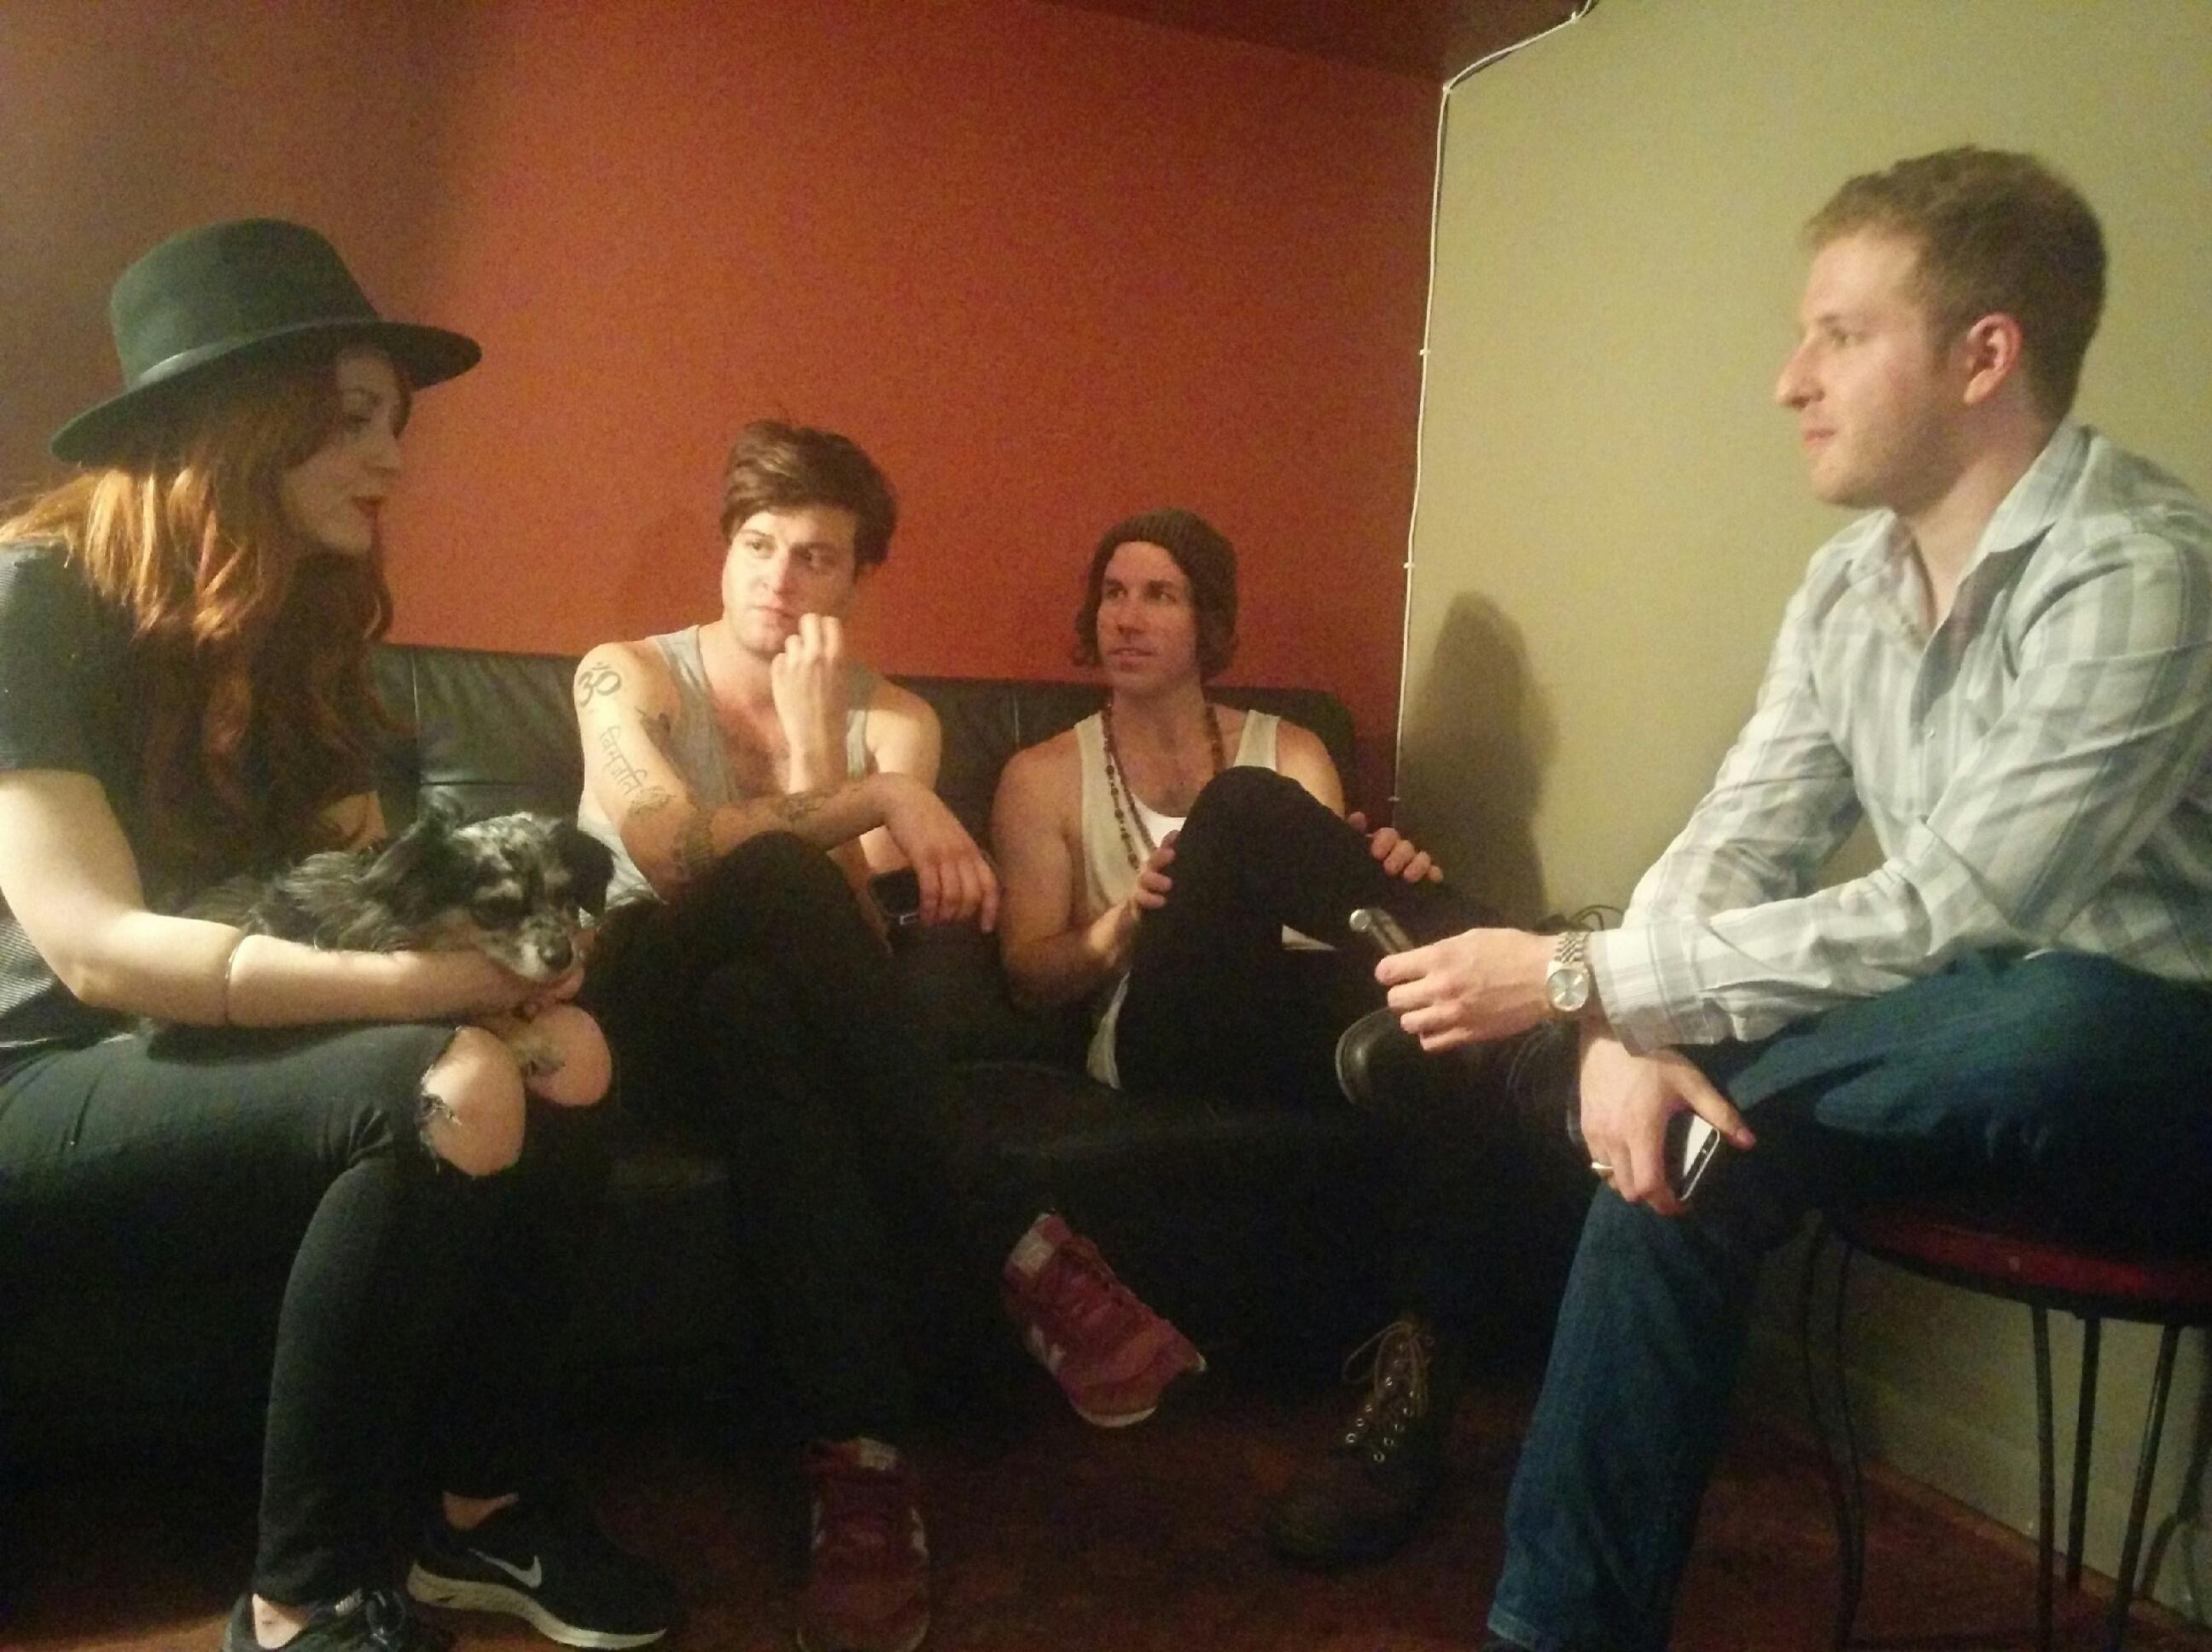 Atwood Magazine Interviews The Mowgli's